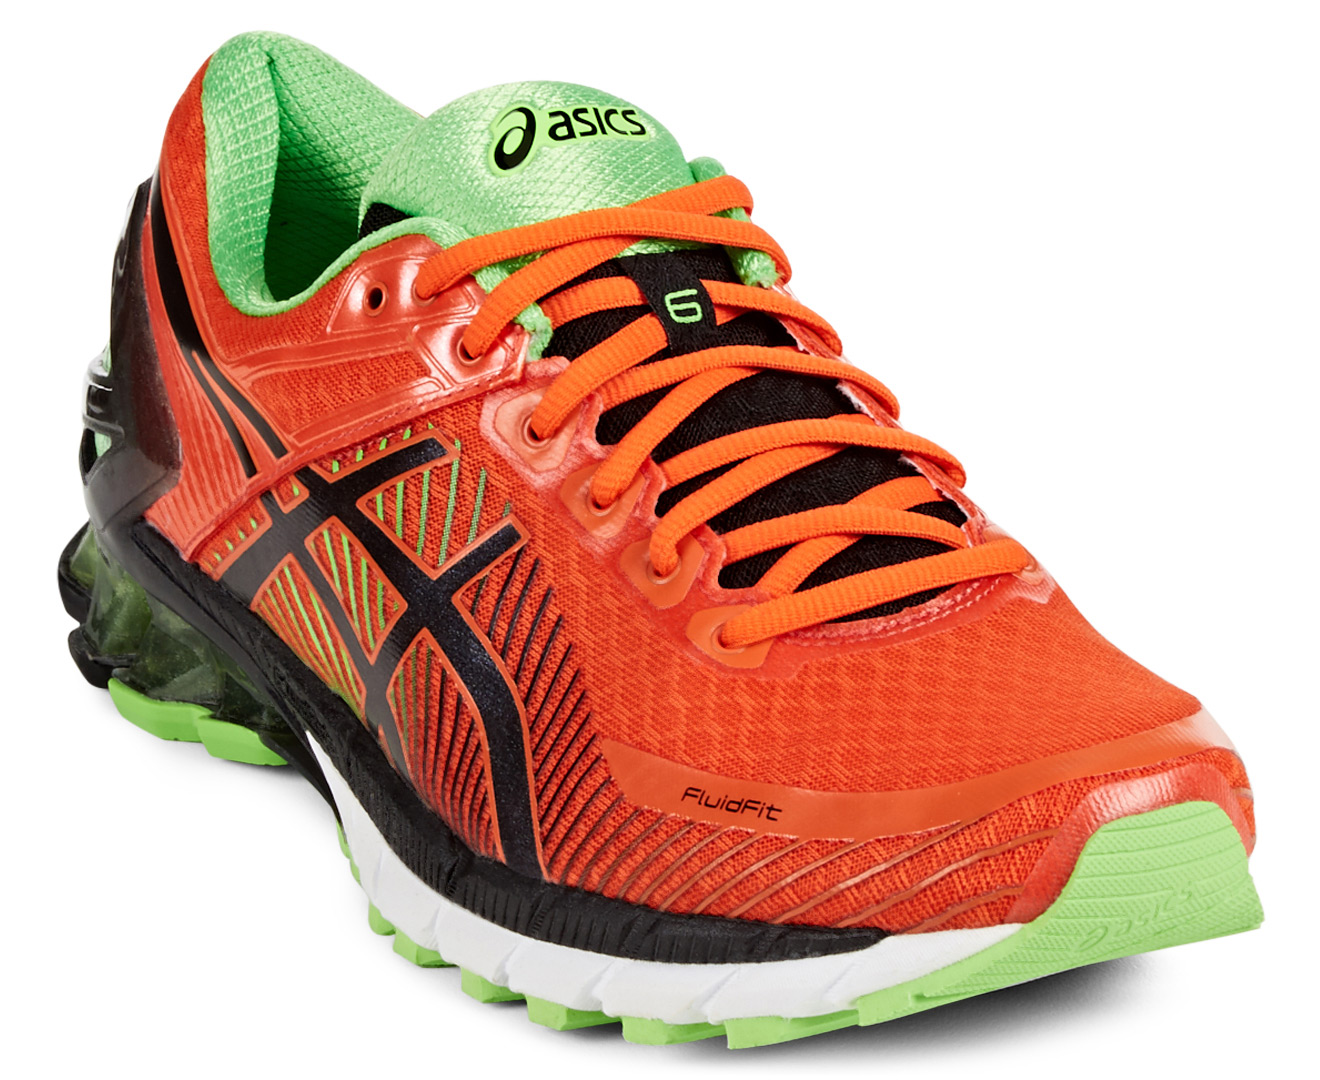 wholesale dealer 04c41 7fdae ... red Catch.com.au ASICS Mens GEL-Kinsei 6 Shoe - FiestaBlackGreen Gecko  ...